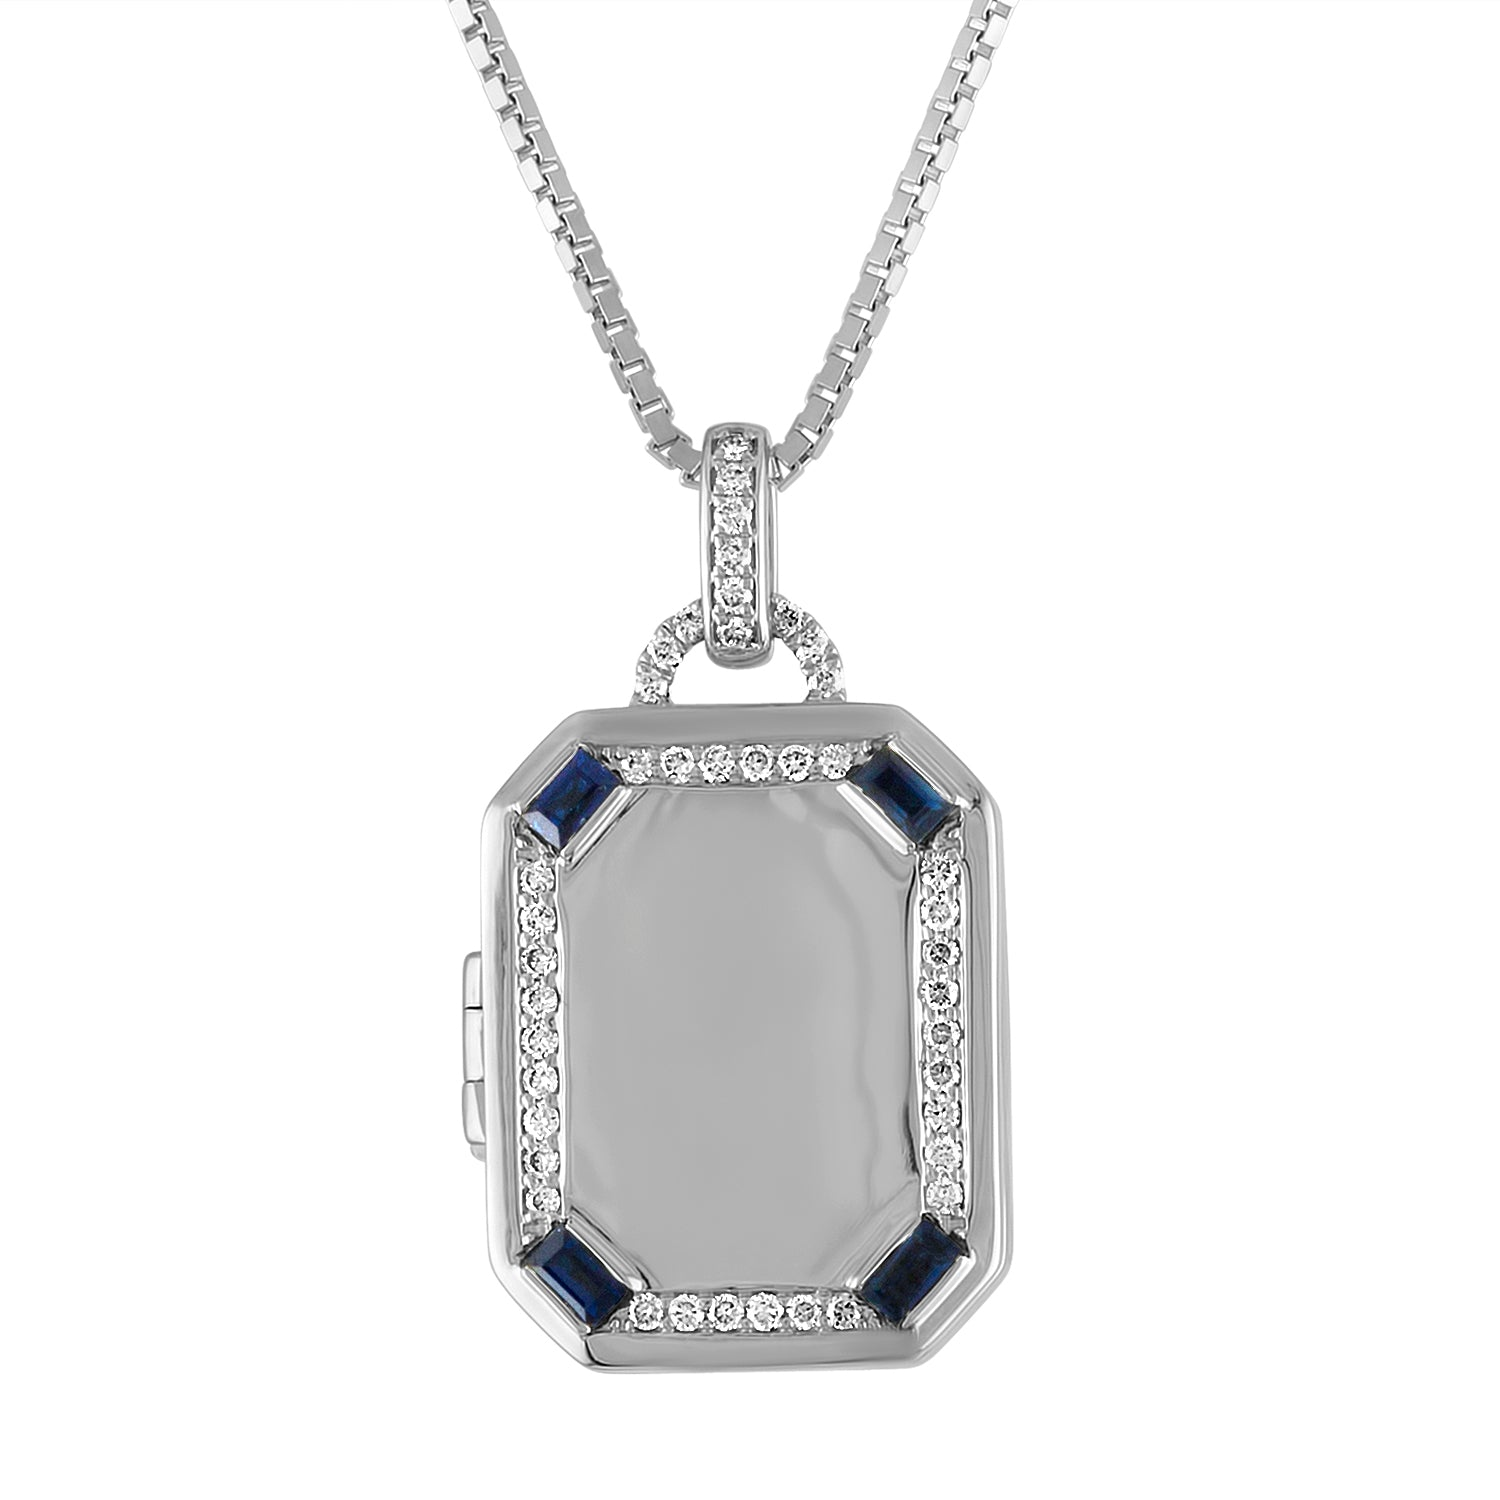 Rectangular locket with diamond border and sapphire baguette corners